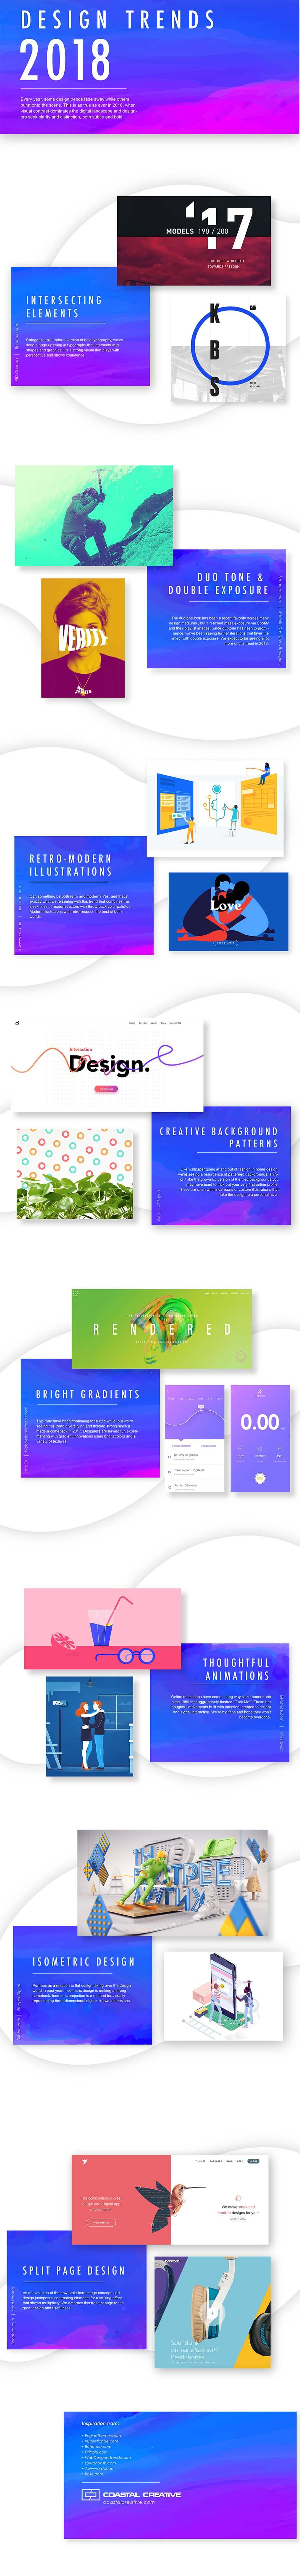 Web And Graphic Design Trends